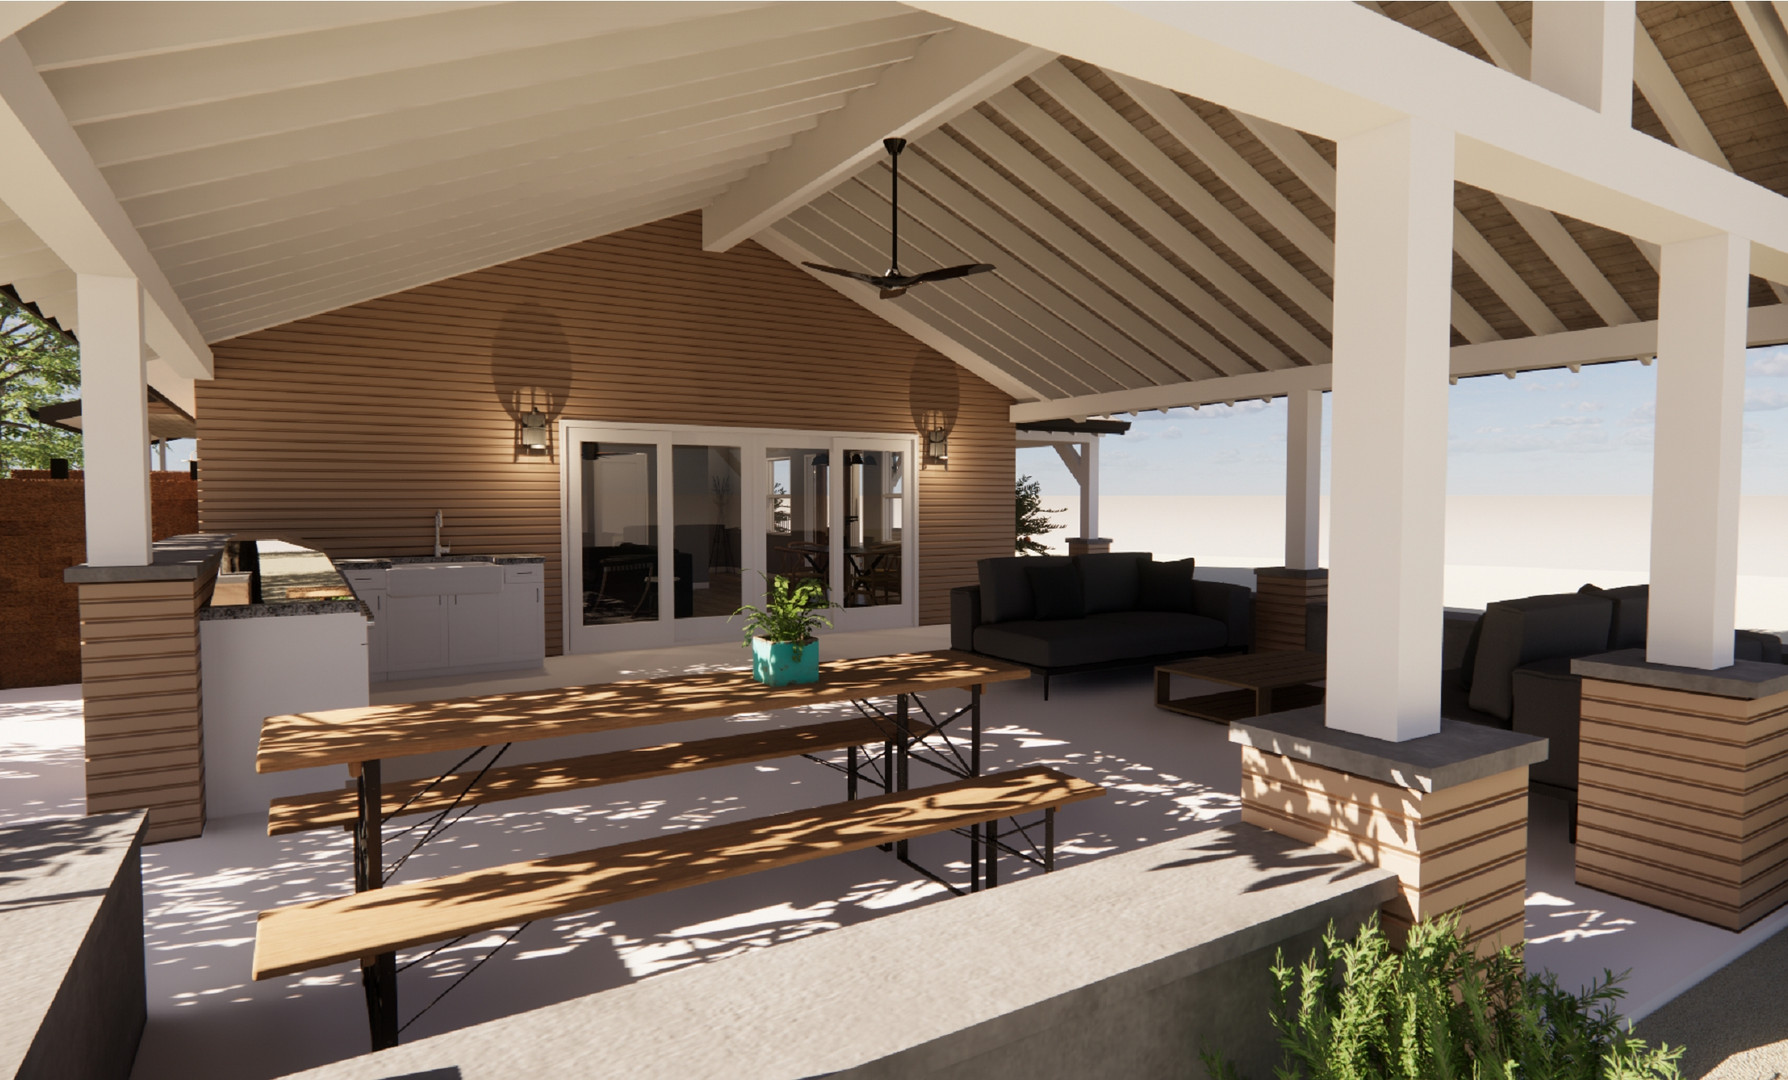 PALO CEDRO ADU REMODEL - COVERED OUTDOOR LIVING SPACE